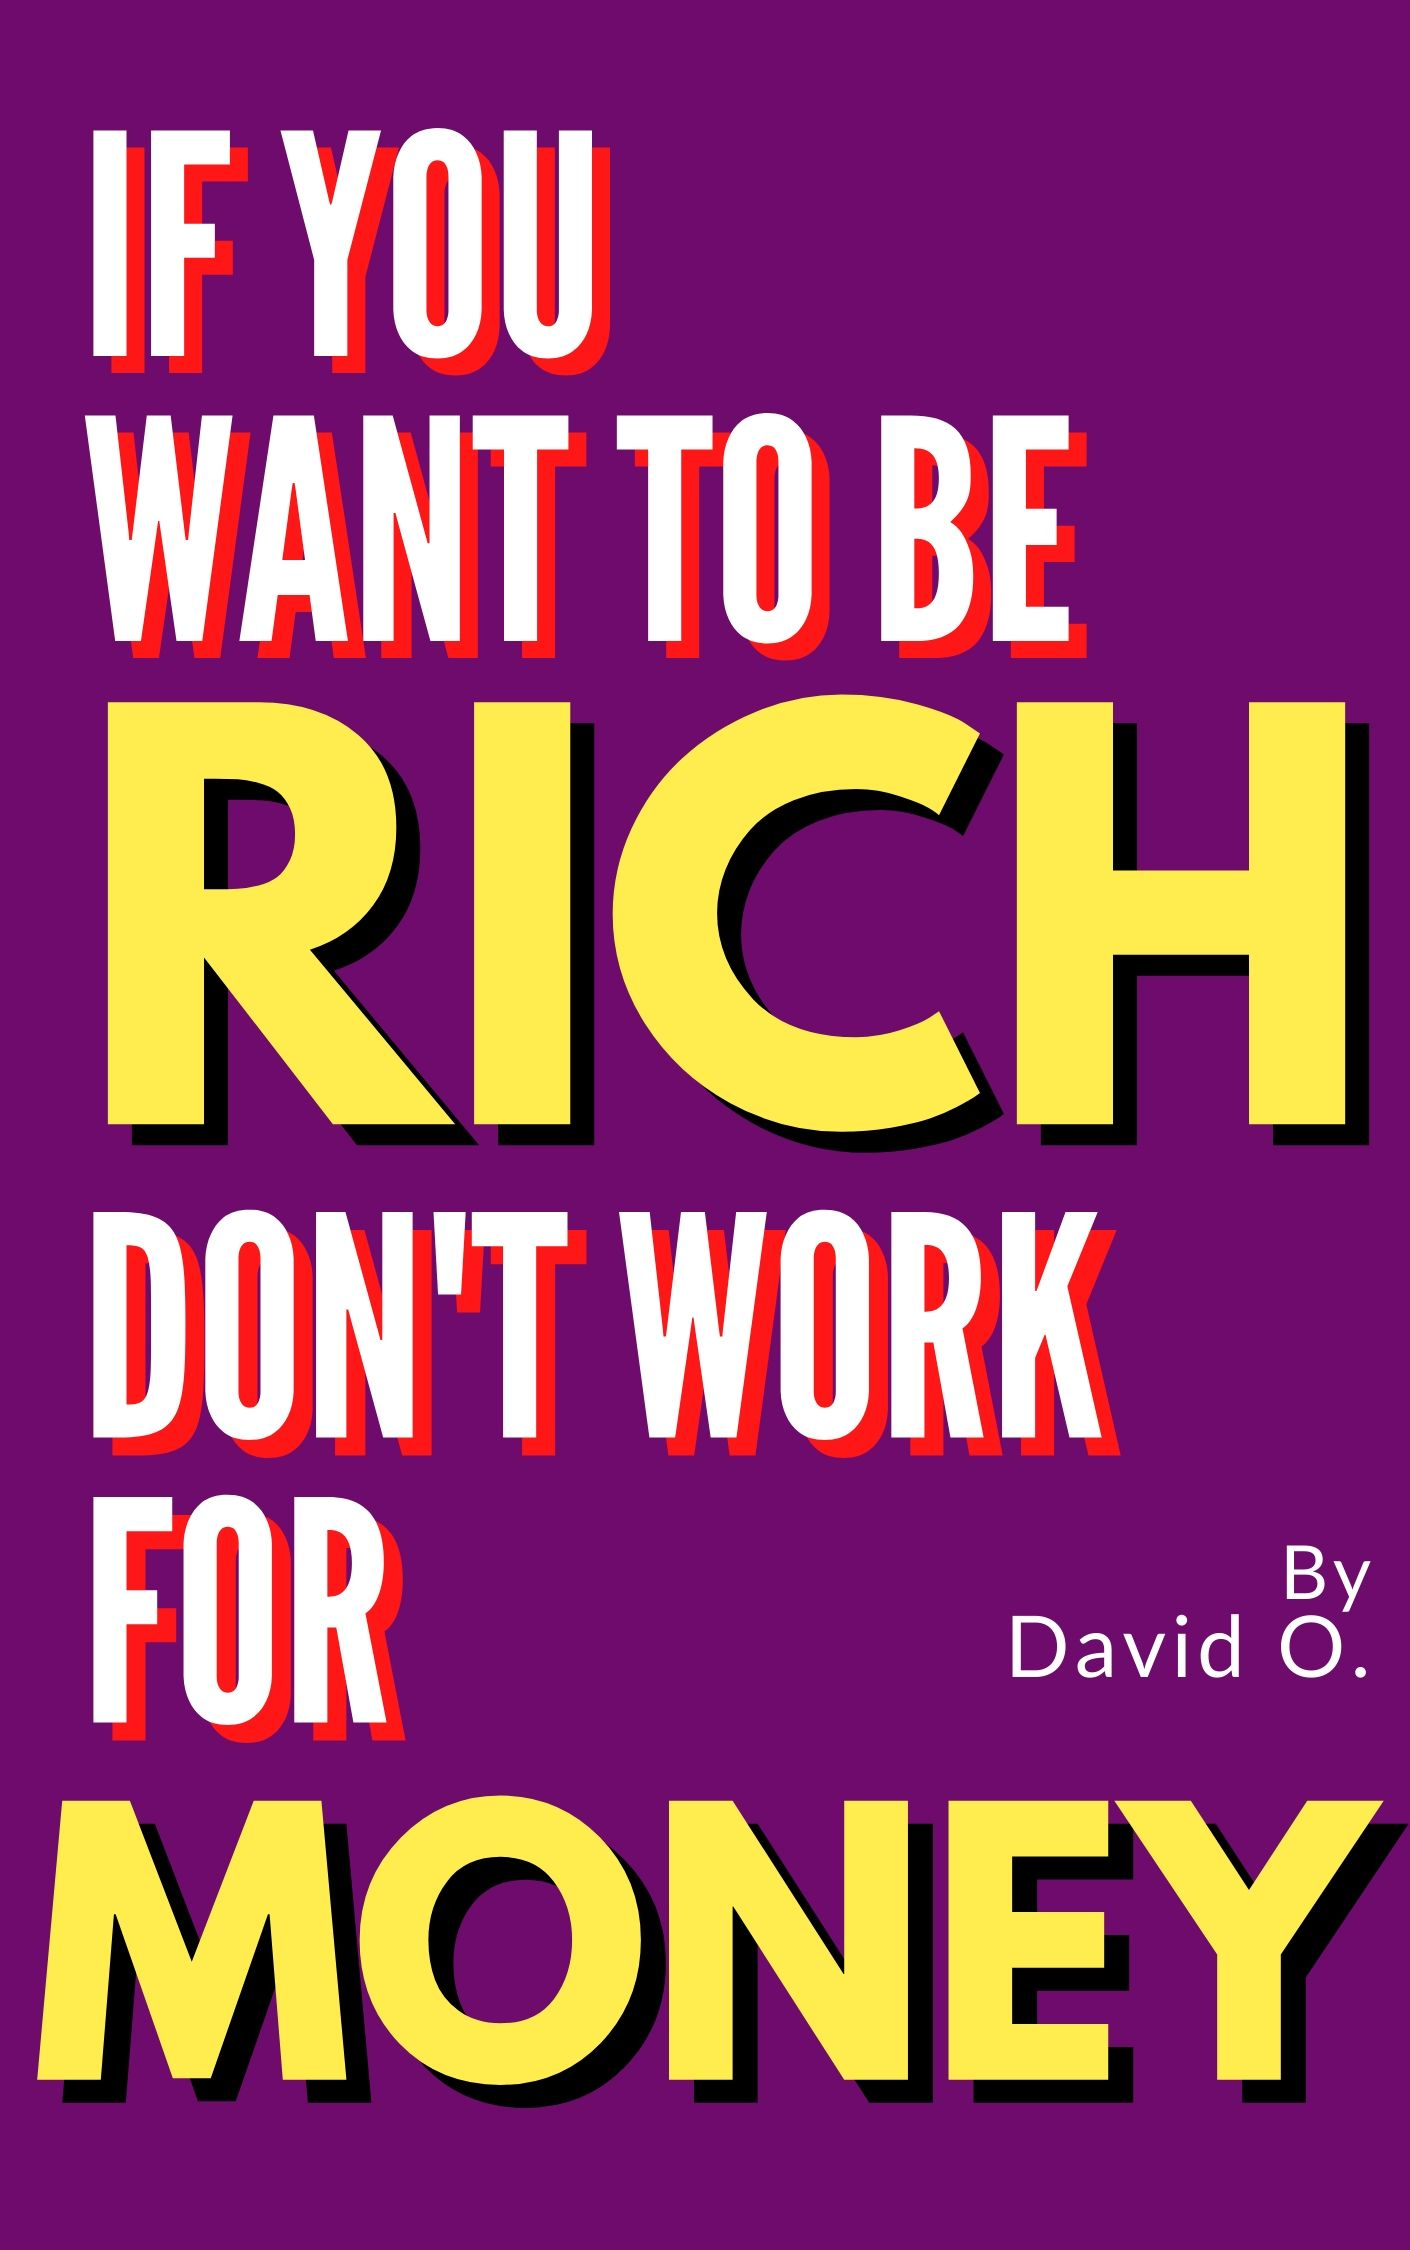 If you want to be rich, don't work for money